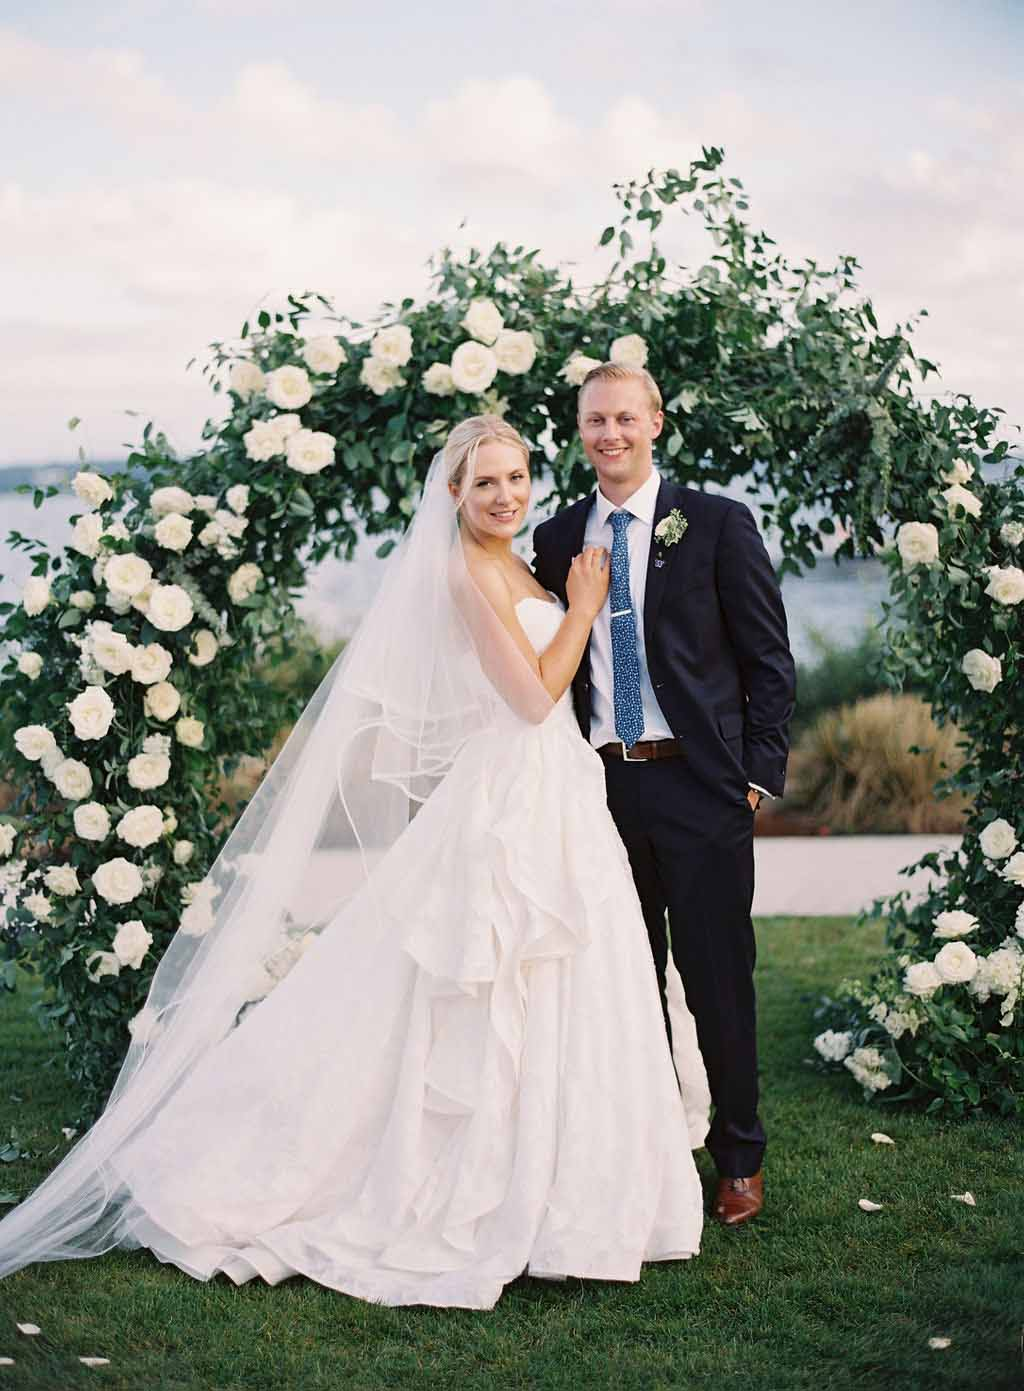 bride and groom pose in front of a tunnel arch decorated with greenery and white roses